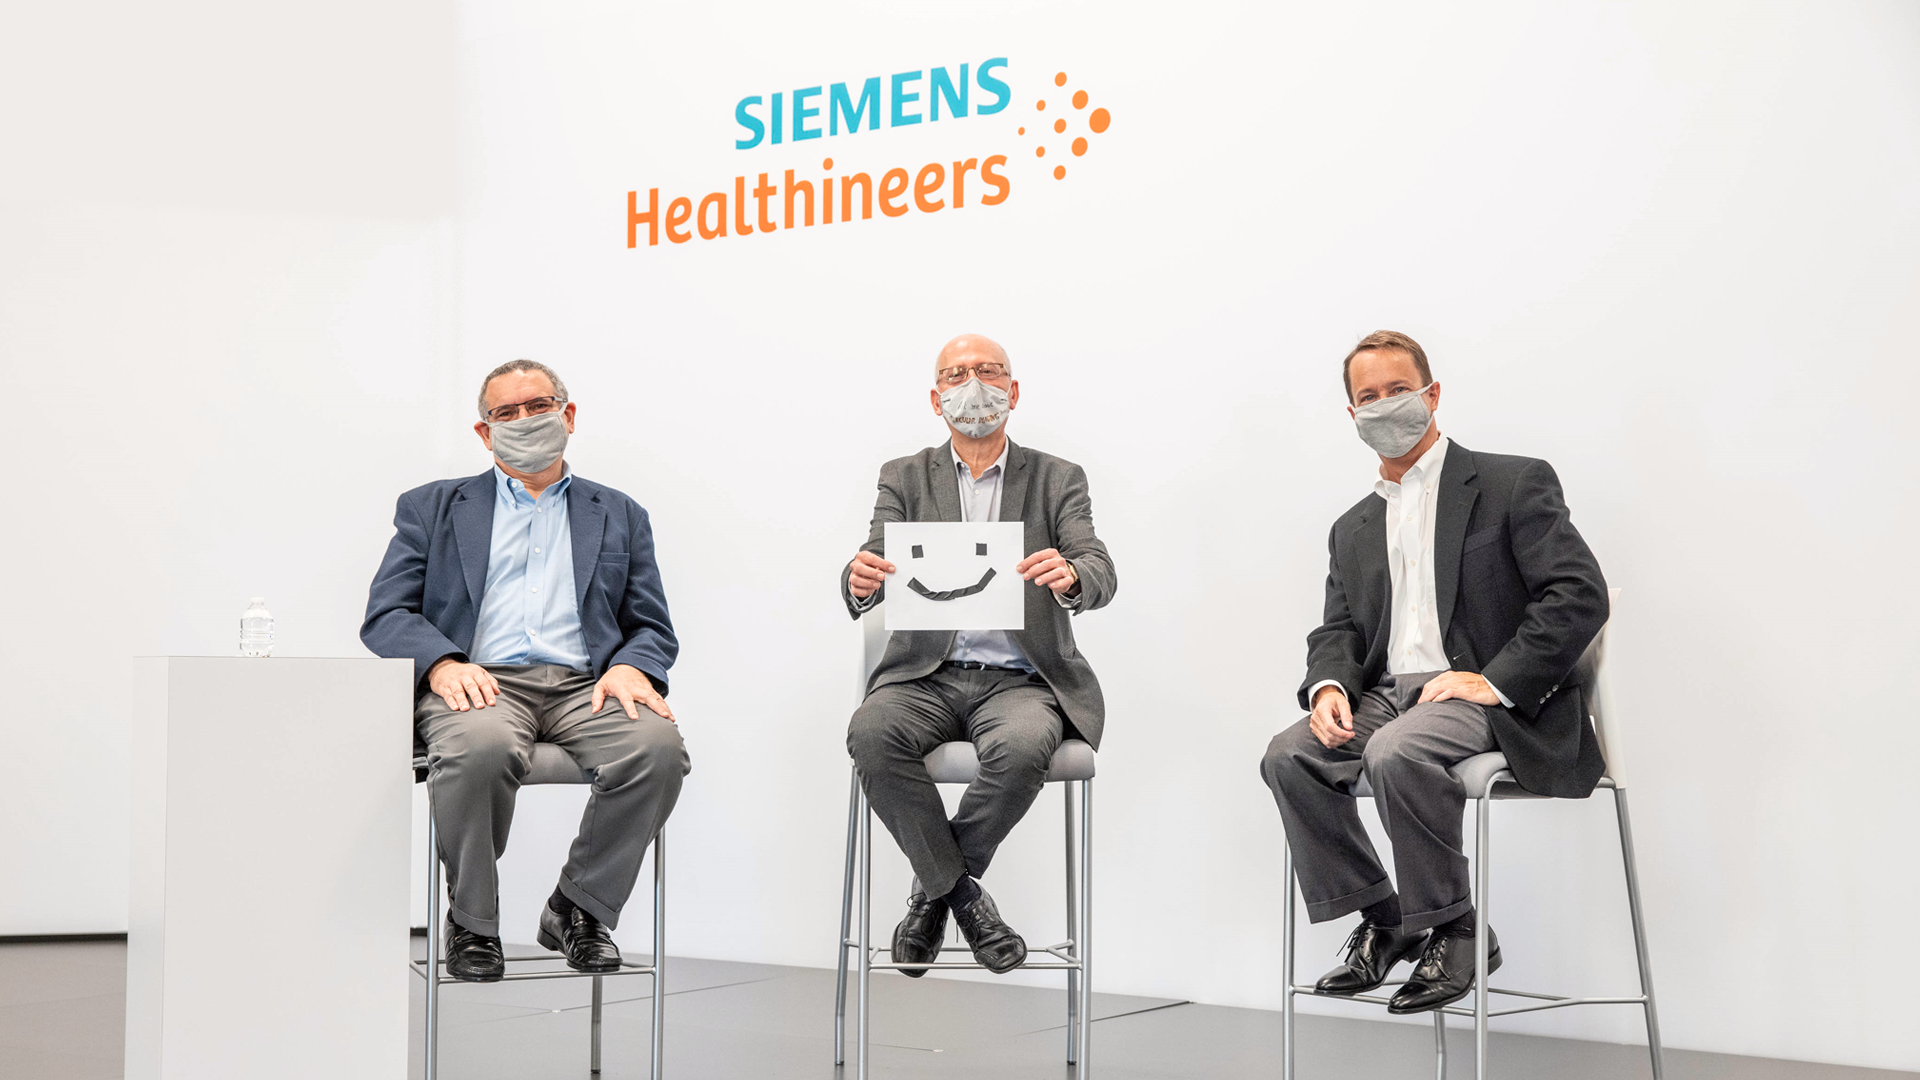 Scientists and physicians at Siemens Healthineers show their enthusiasm for Biograph Vision Quadra by holding up a smiling face.